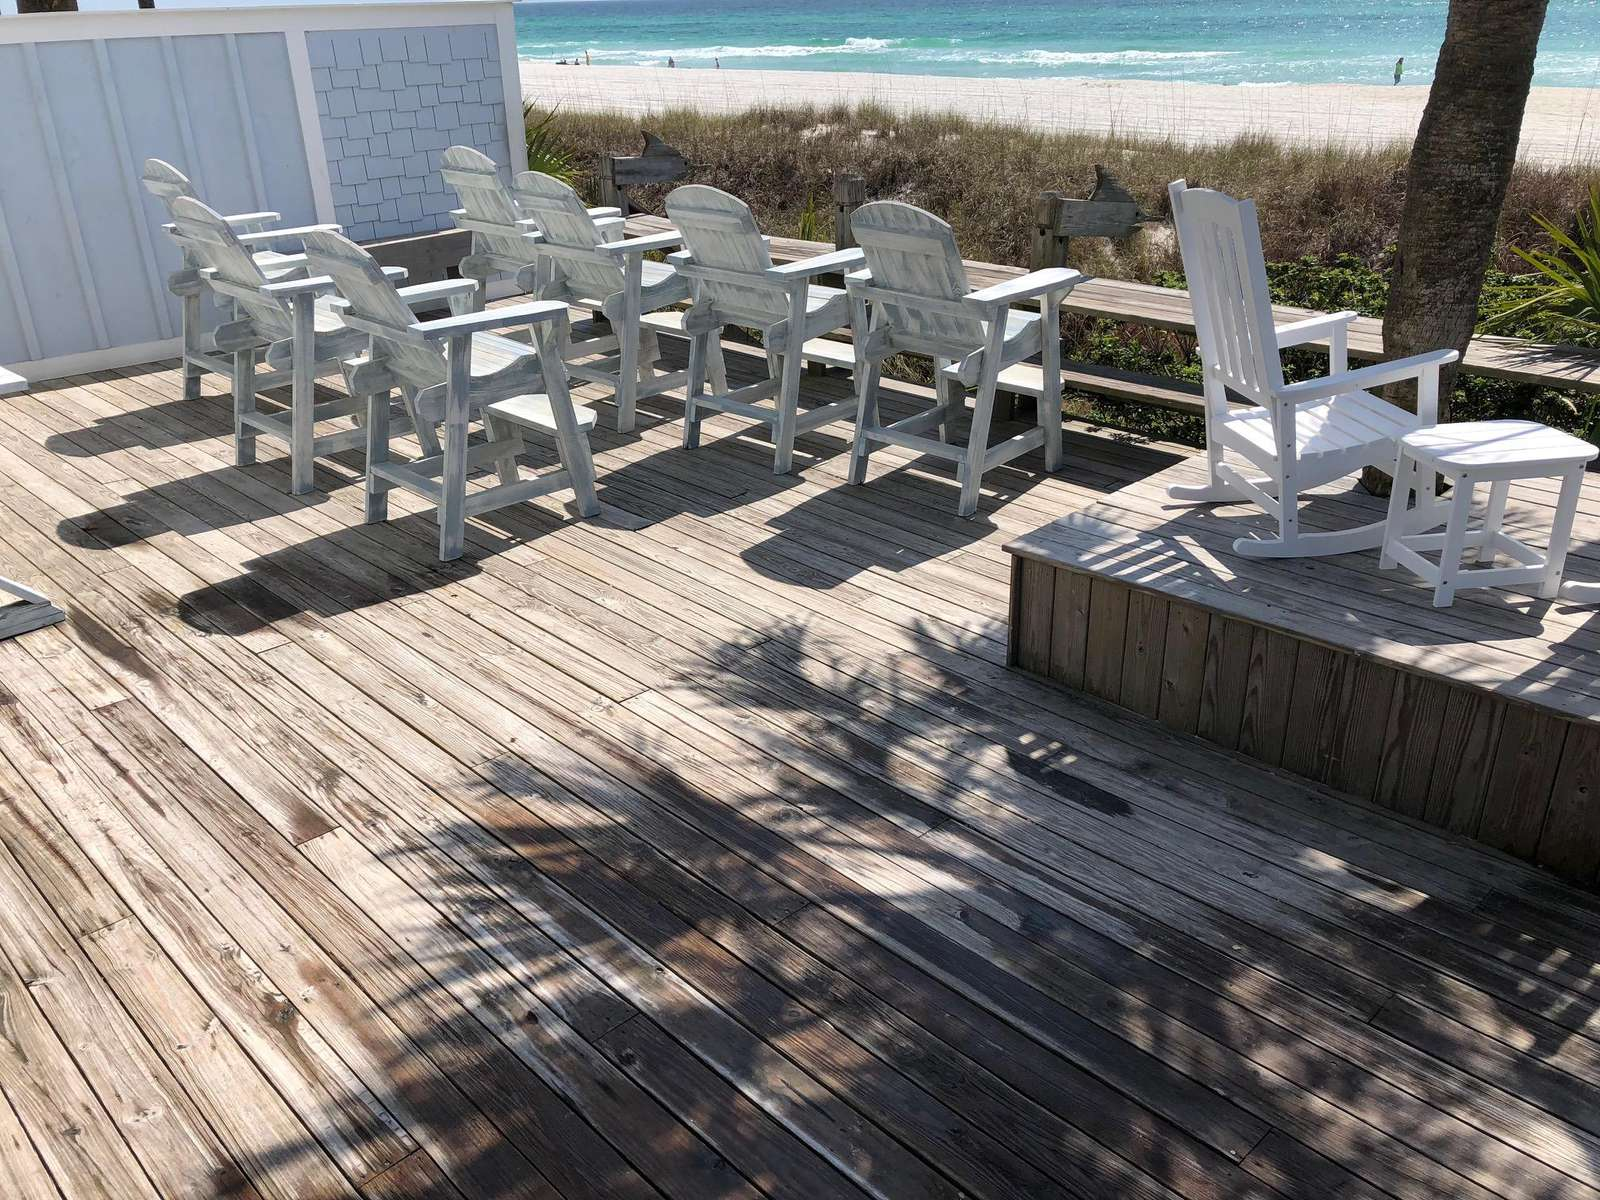 Tall Chairs & Rockers overlooking ocean, 2 charcoal grills